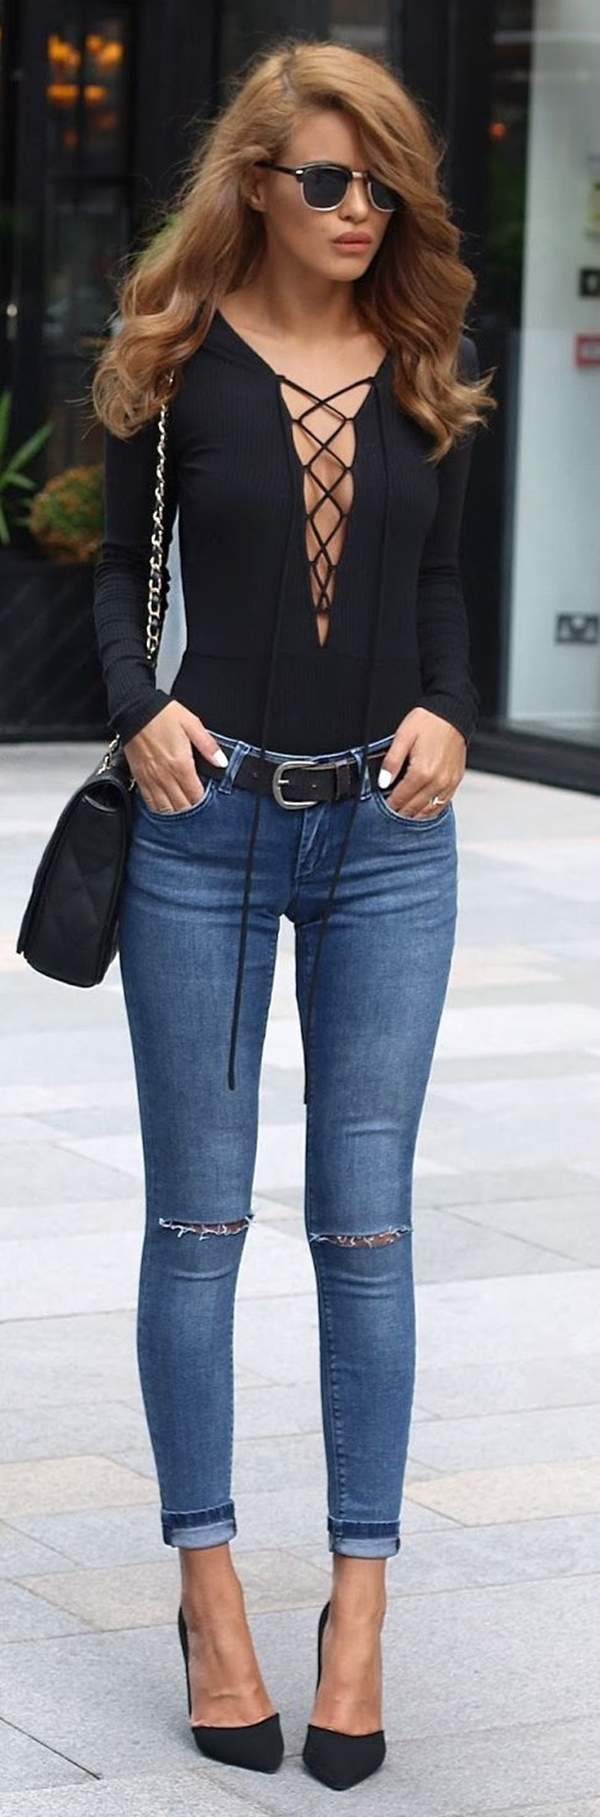 outfits-to-make-you-look-slimmer-and-sexier-5